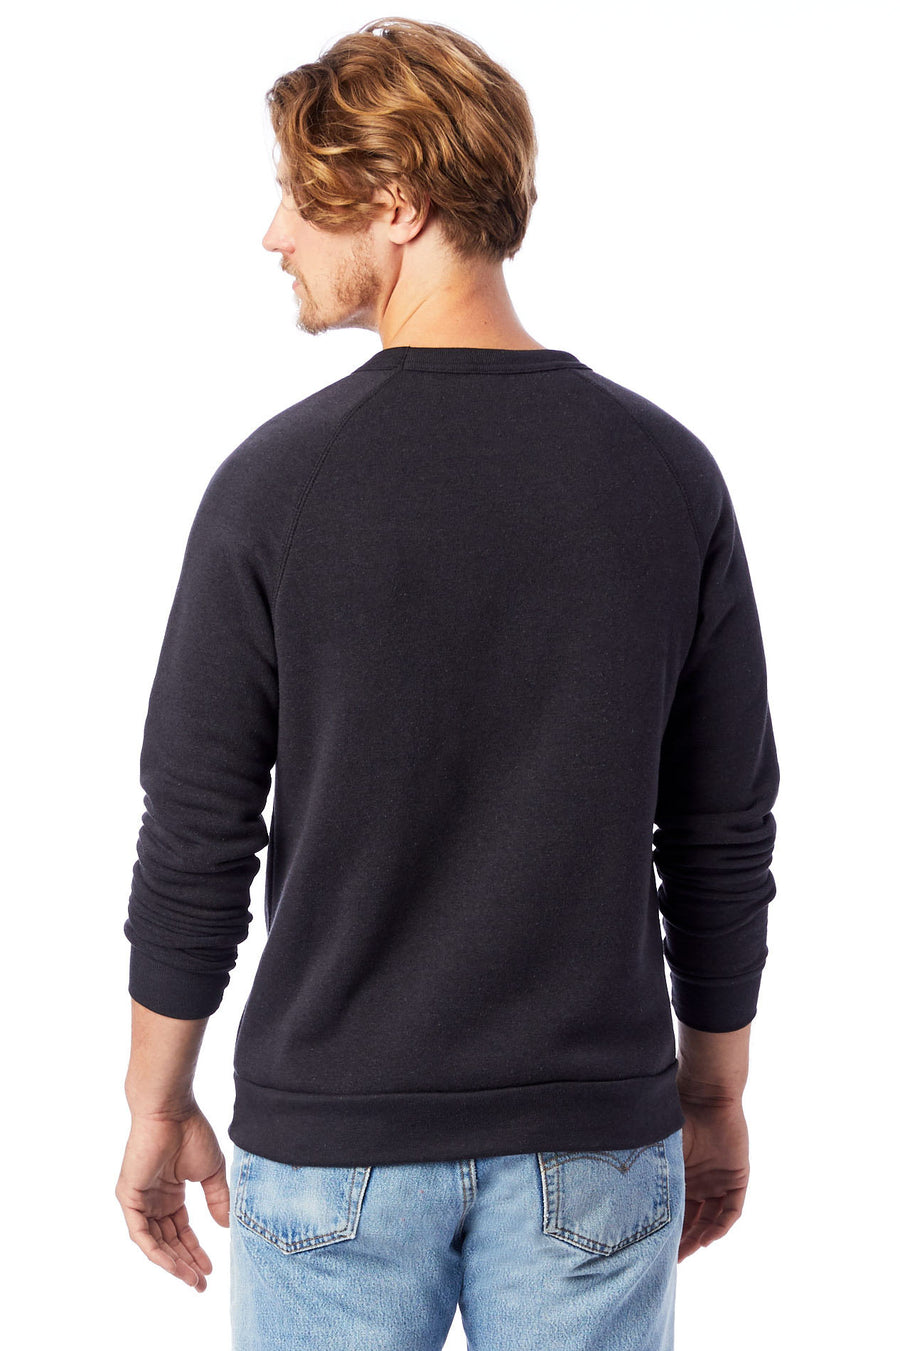 Champ Sweatshirt - Eco True Black - Pavilion